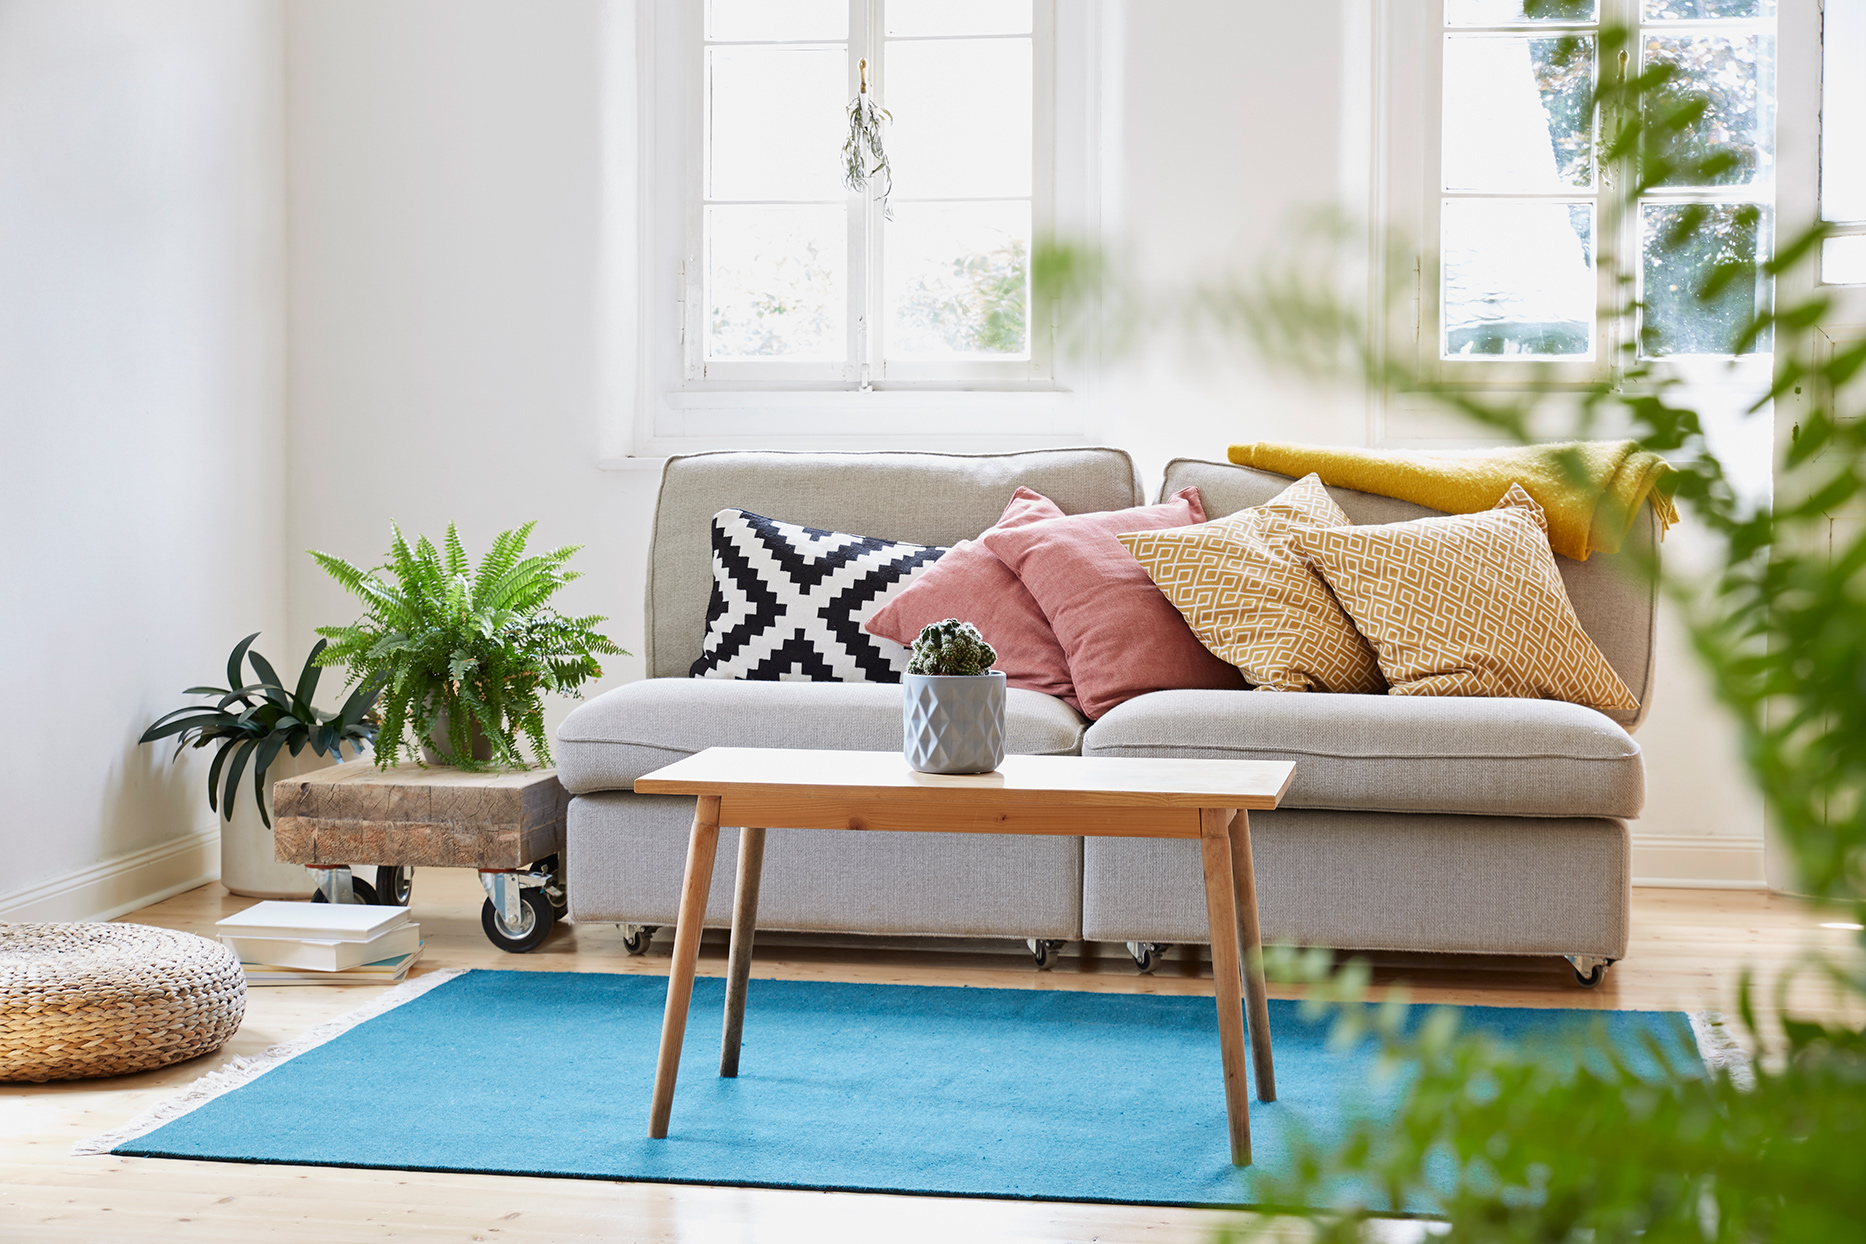 Living room with gray couch and wooden coffee table